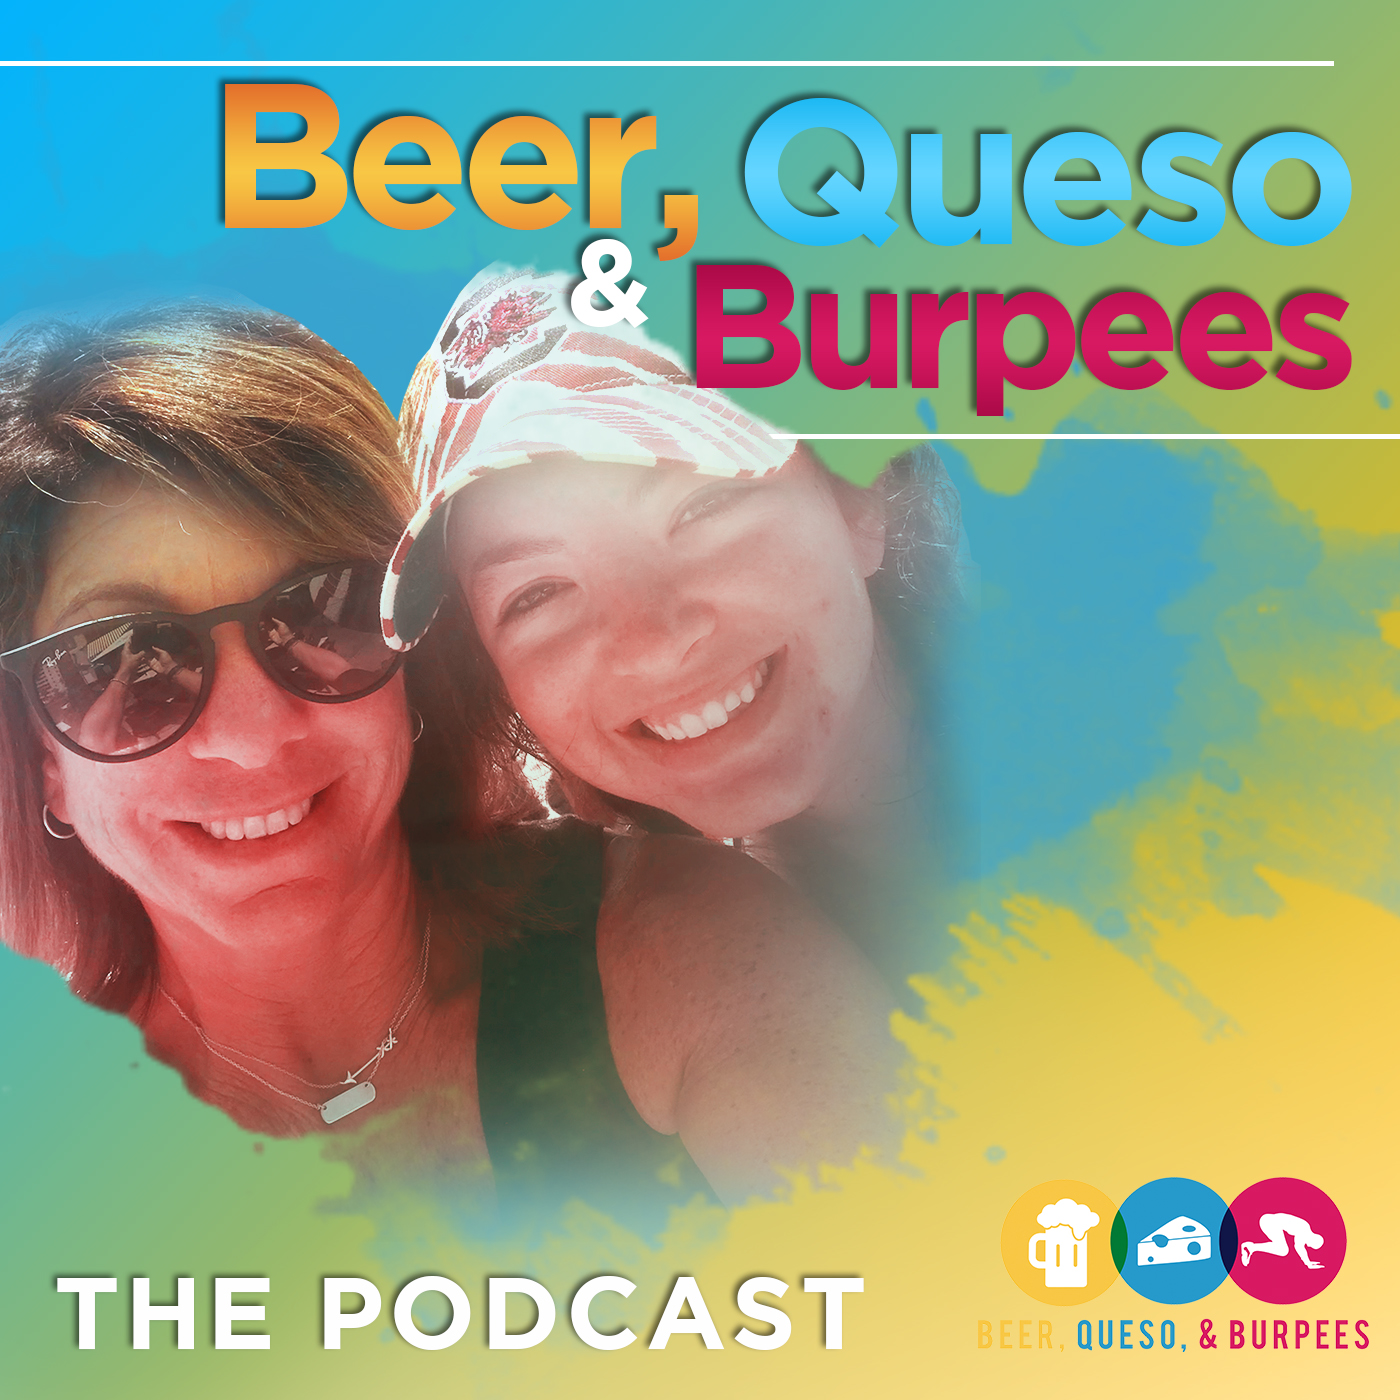 Beer, Queso & Burpees: The Podcast